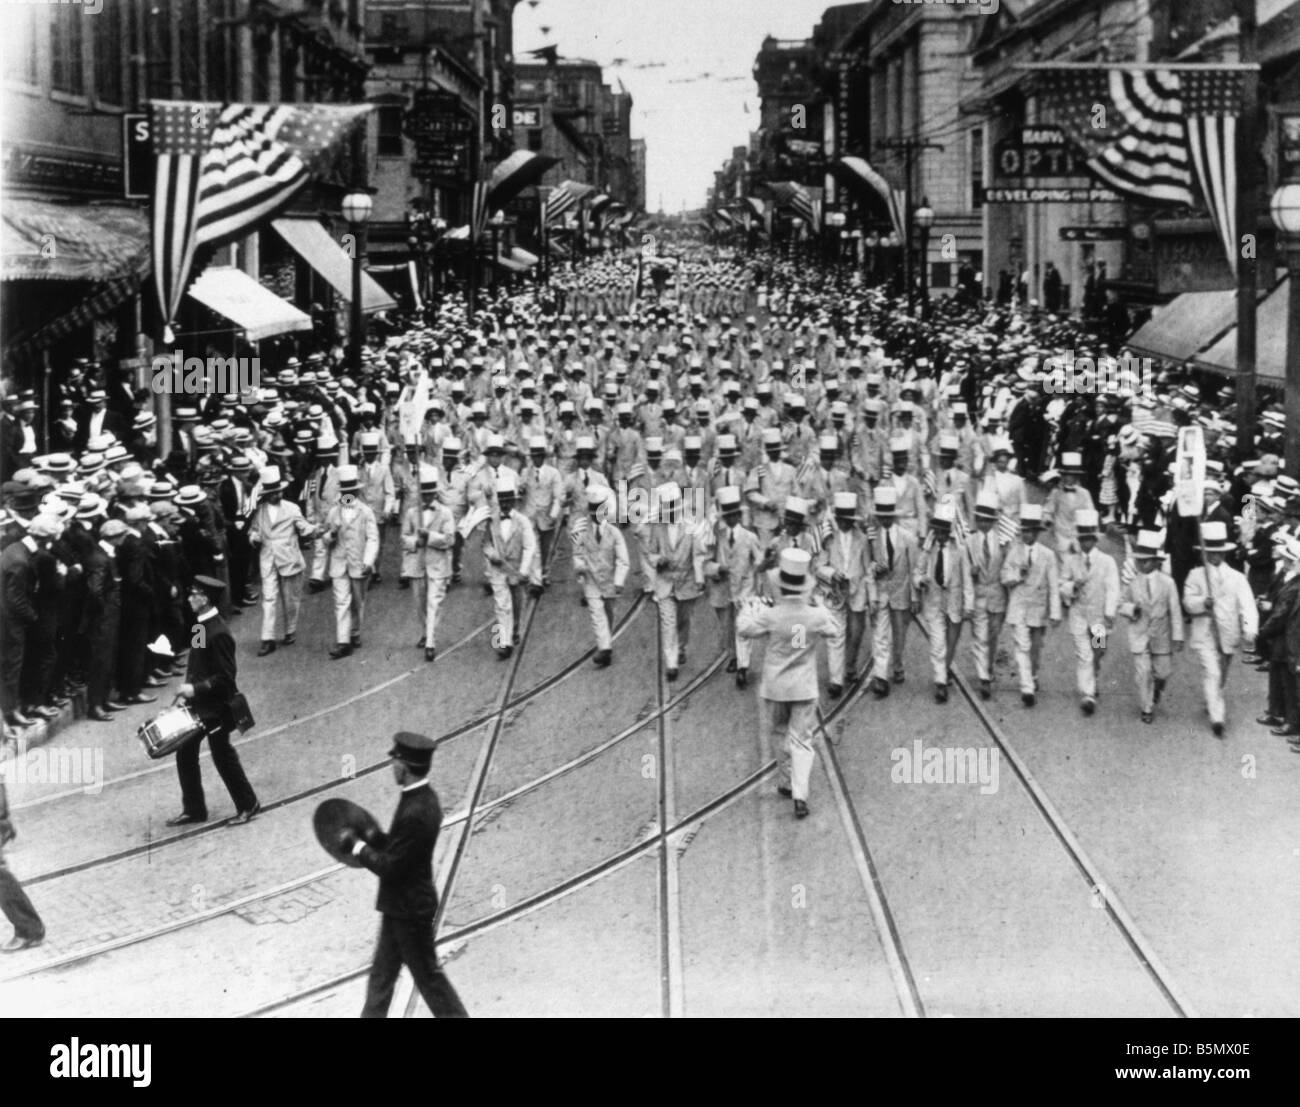 9US 1916 7 4 A1 E Parade in New York Independence Day 1916 USA Independence Day Celebrations 4th July 1916 Parade Stock Photo